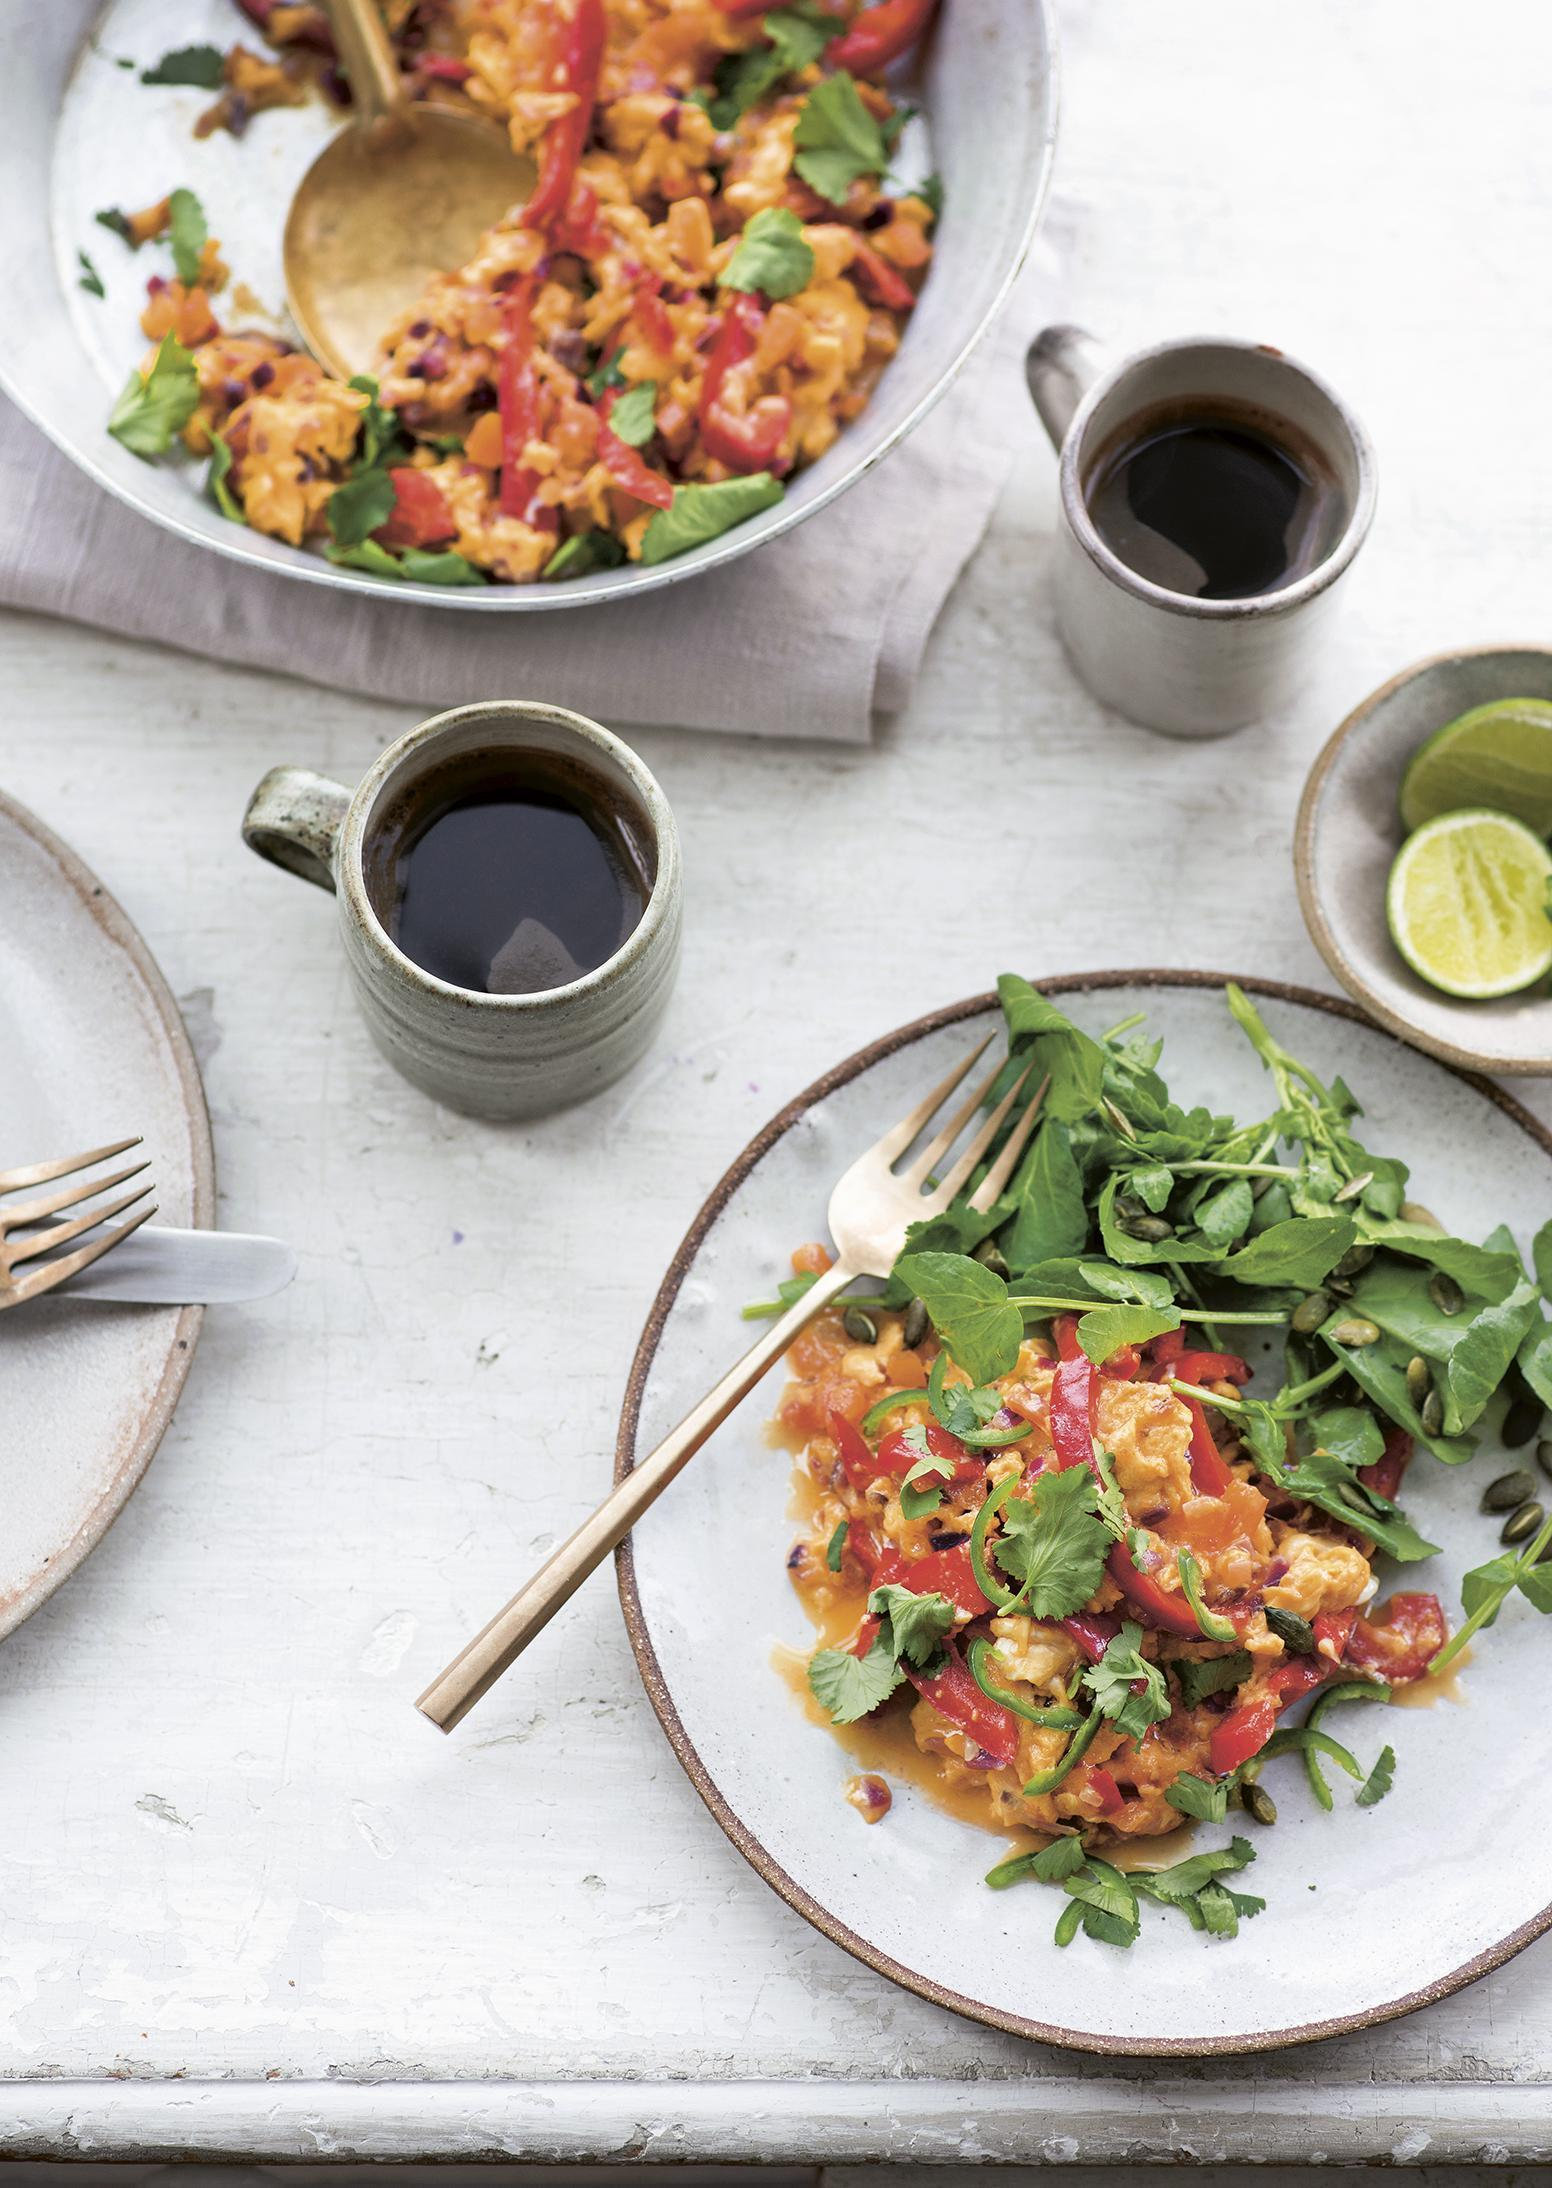 #5 Mexican scrambled eggs with watercress and seed salad